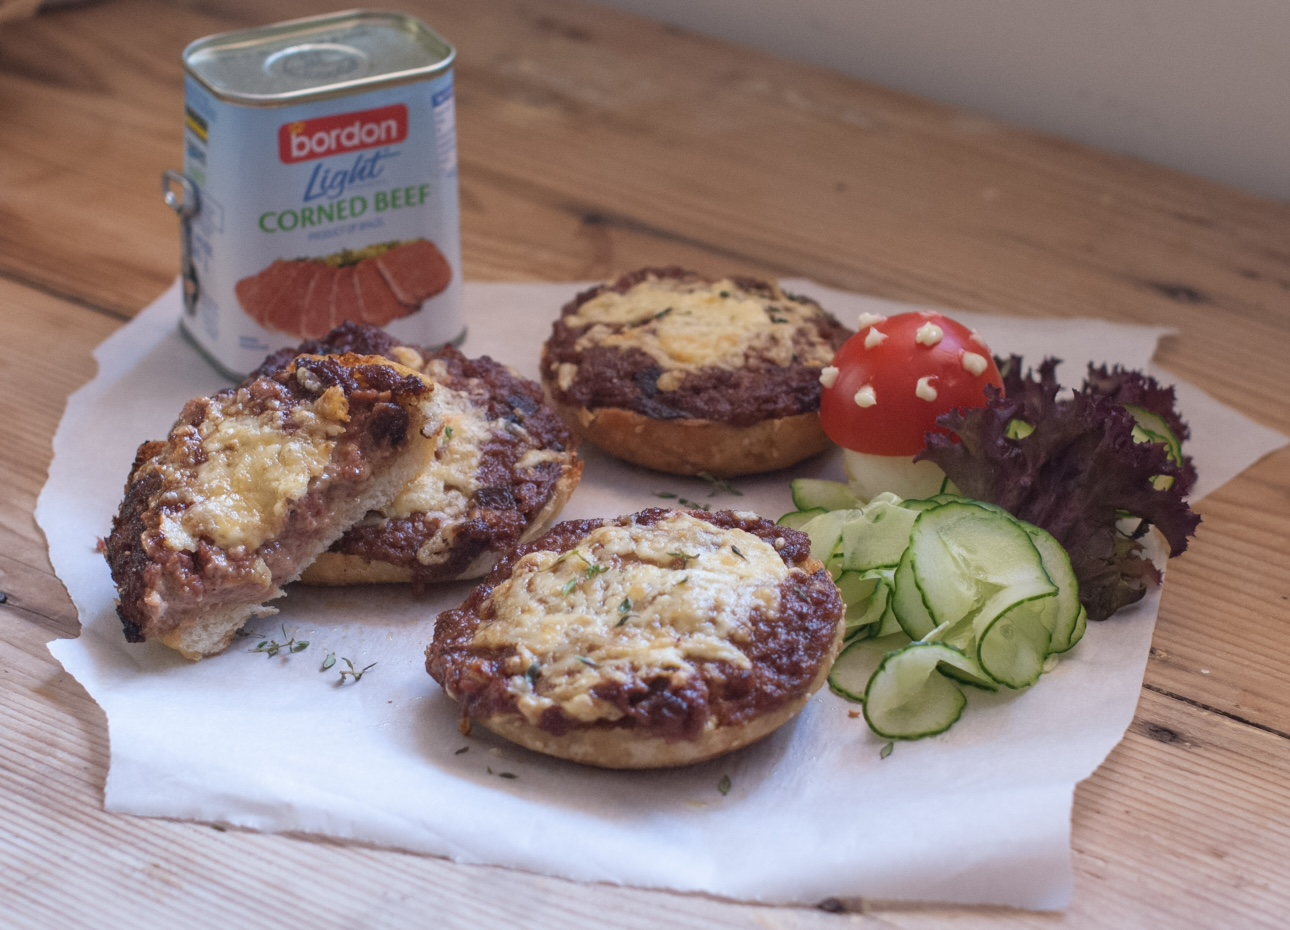 Antonia Borg Bonaci BORDON Recipe: Corned beef melts